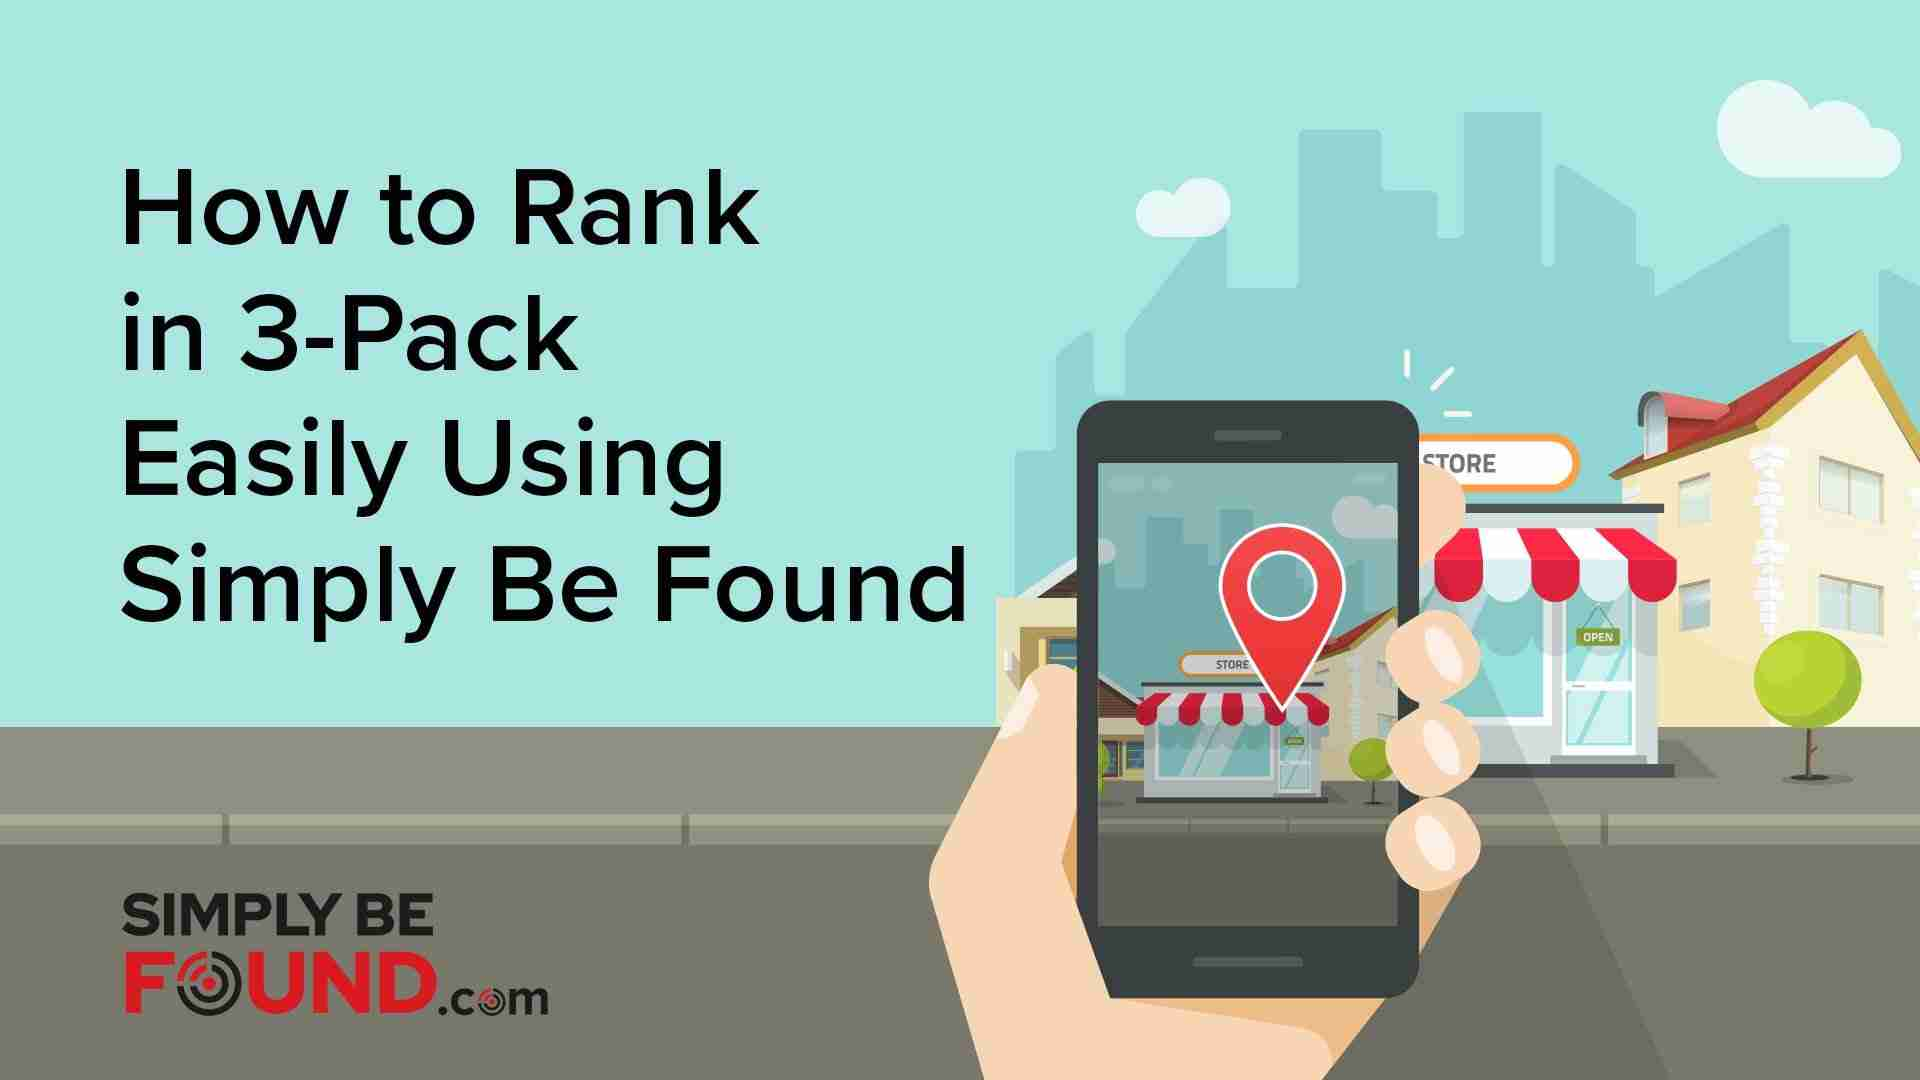 How to Rank in 3-Pack Using Simply Be Found